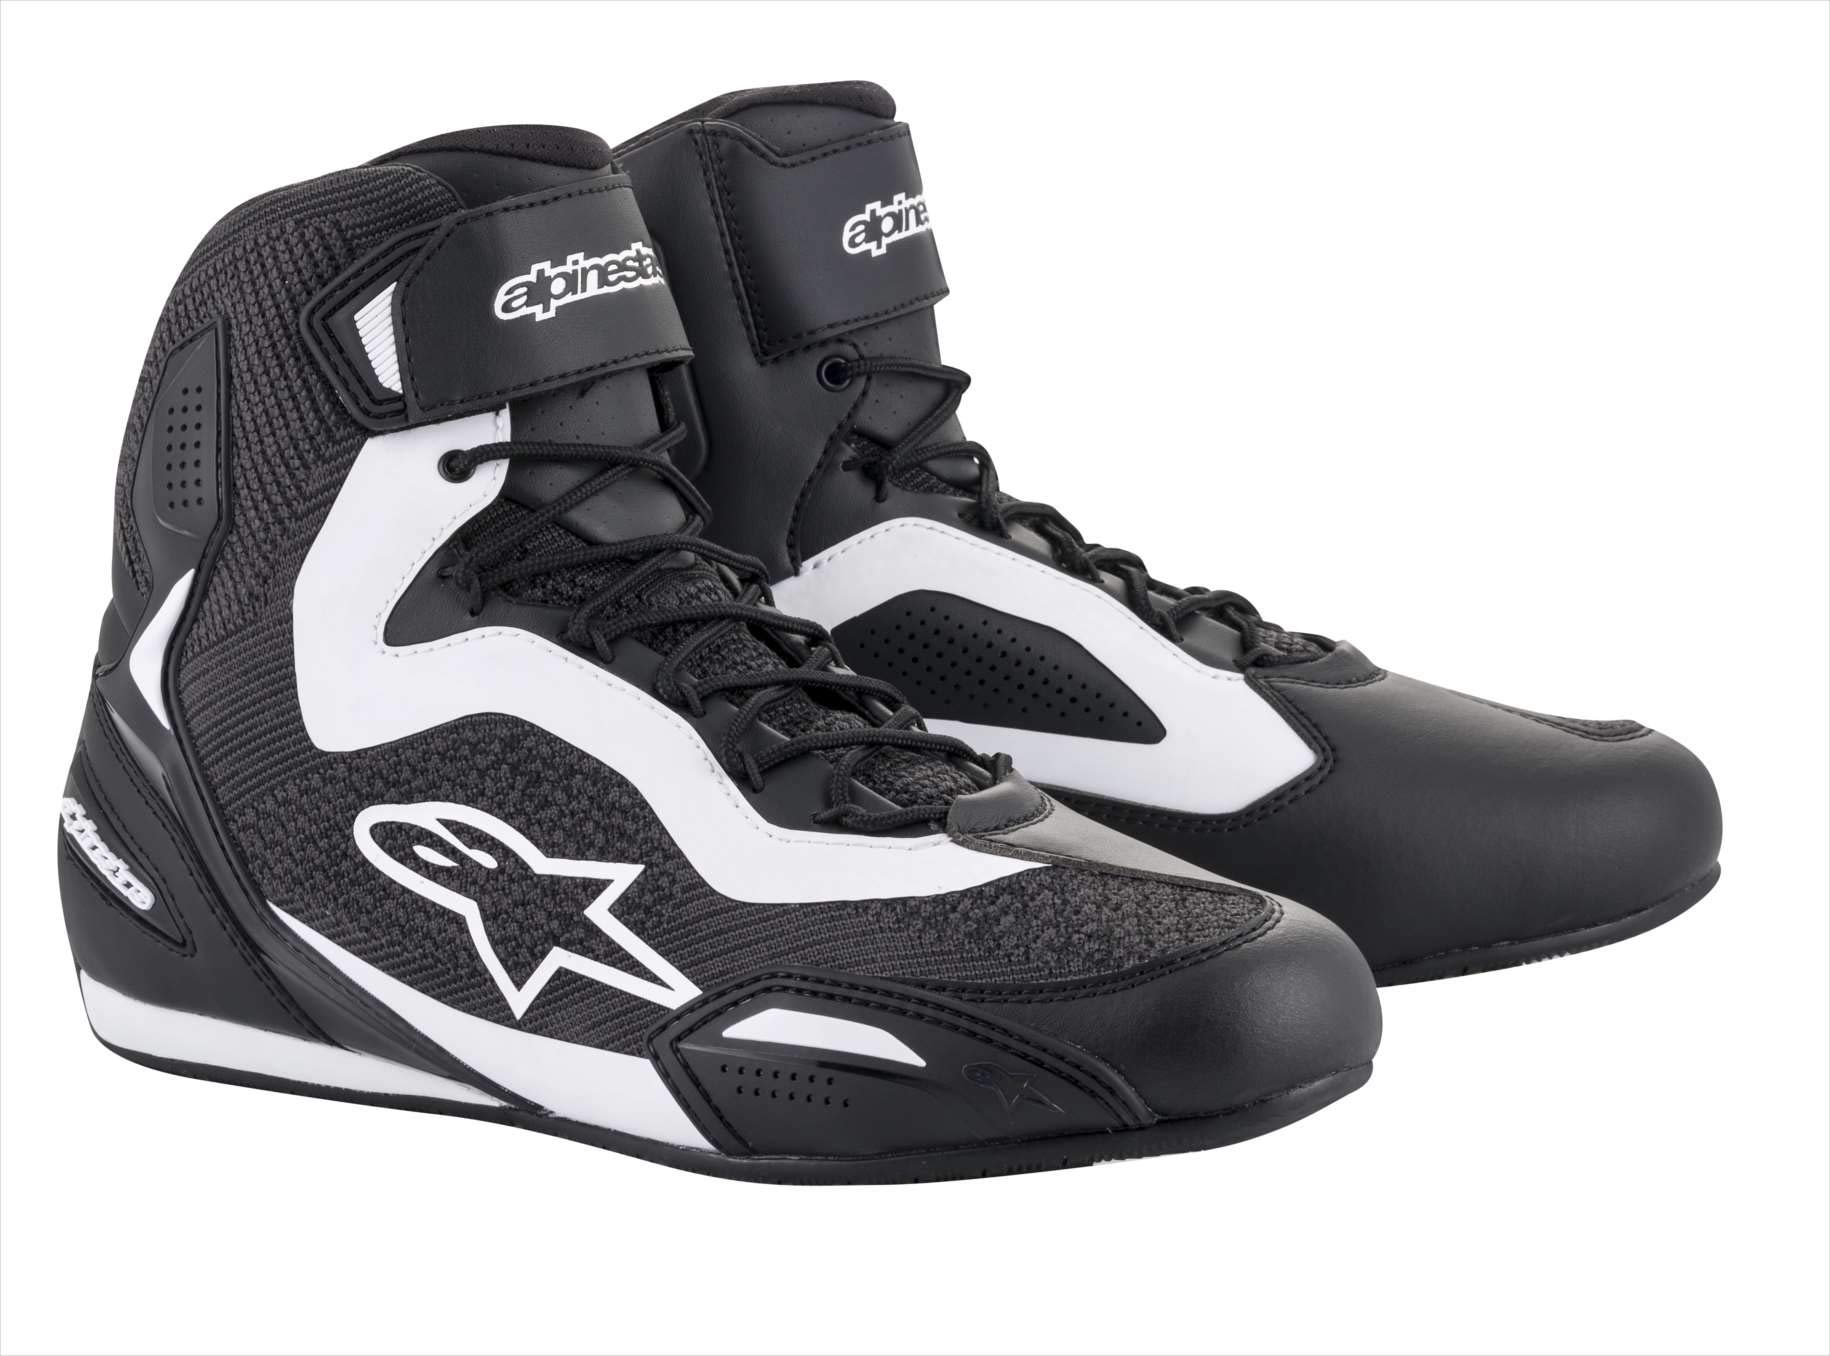 Alpinestars Faster-3 Rideknit Shoes (10.5, 12-Black/White) by Alpinestars